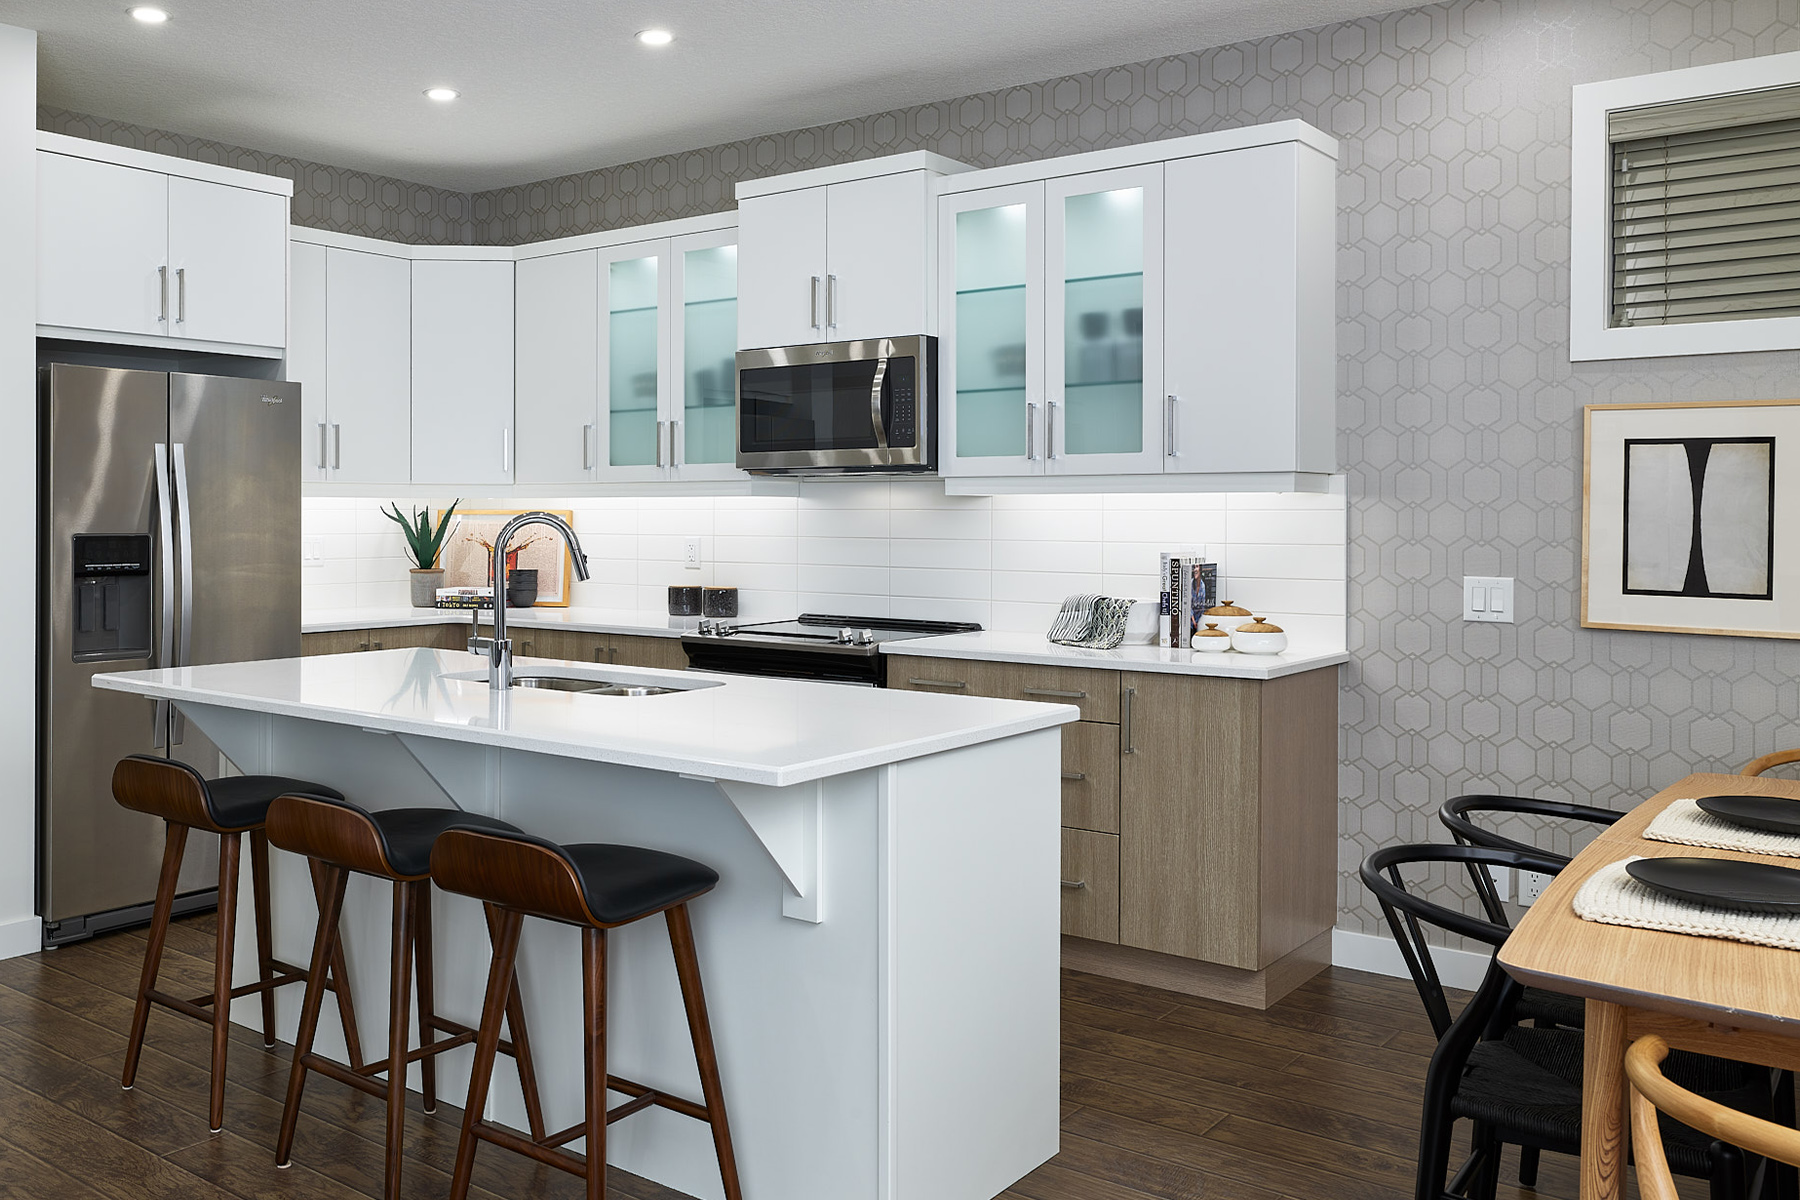 Hudson Plan Kitchen at Carrington in Calgary Alberta by Mattamy Homes